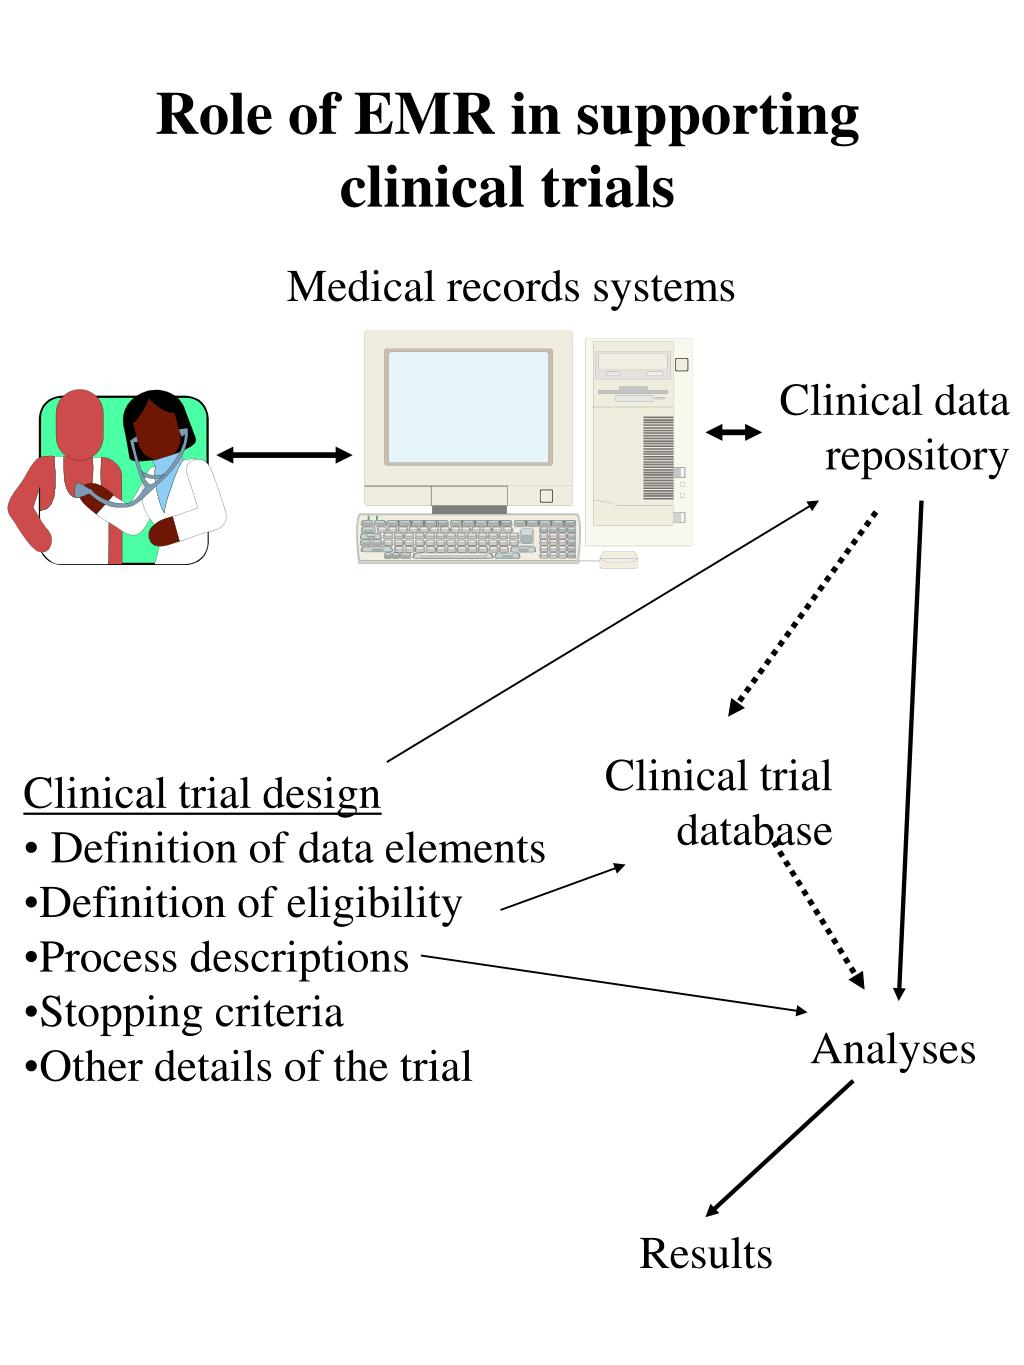 Role of EMR in supporting clinical trials